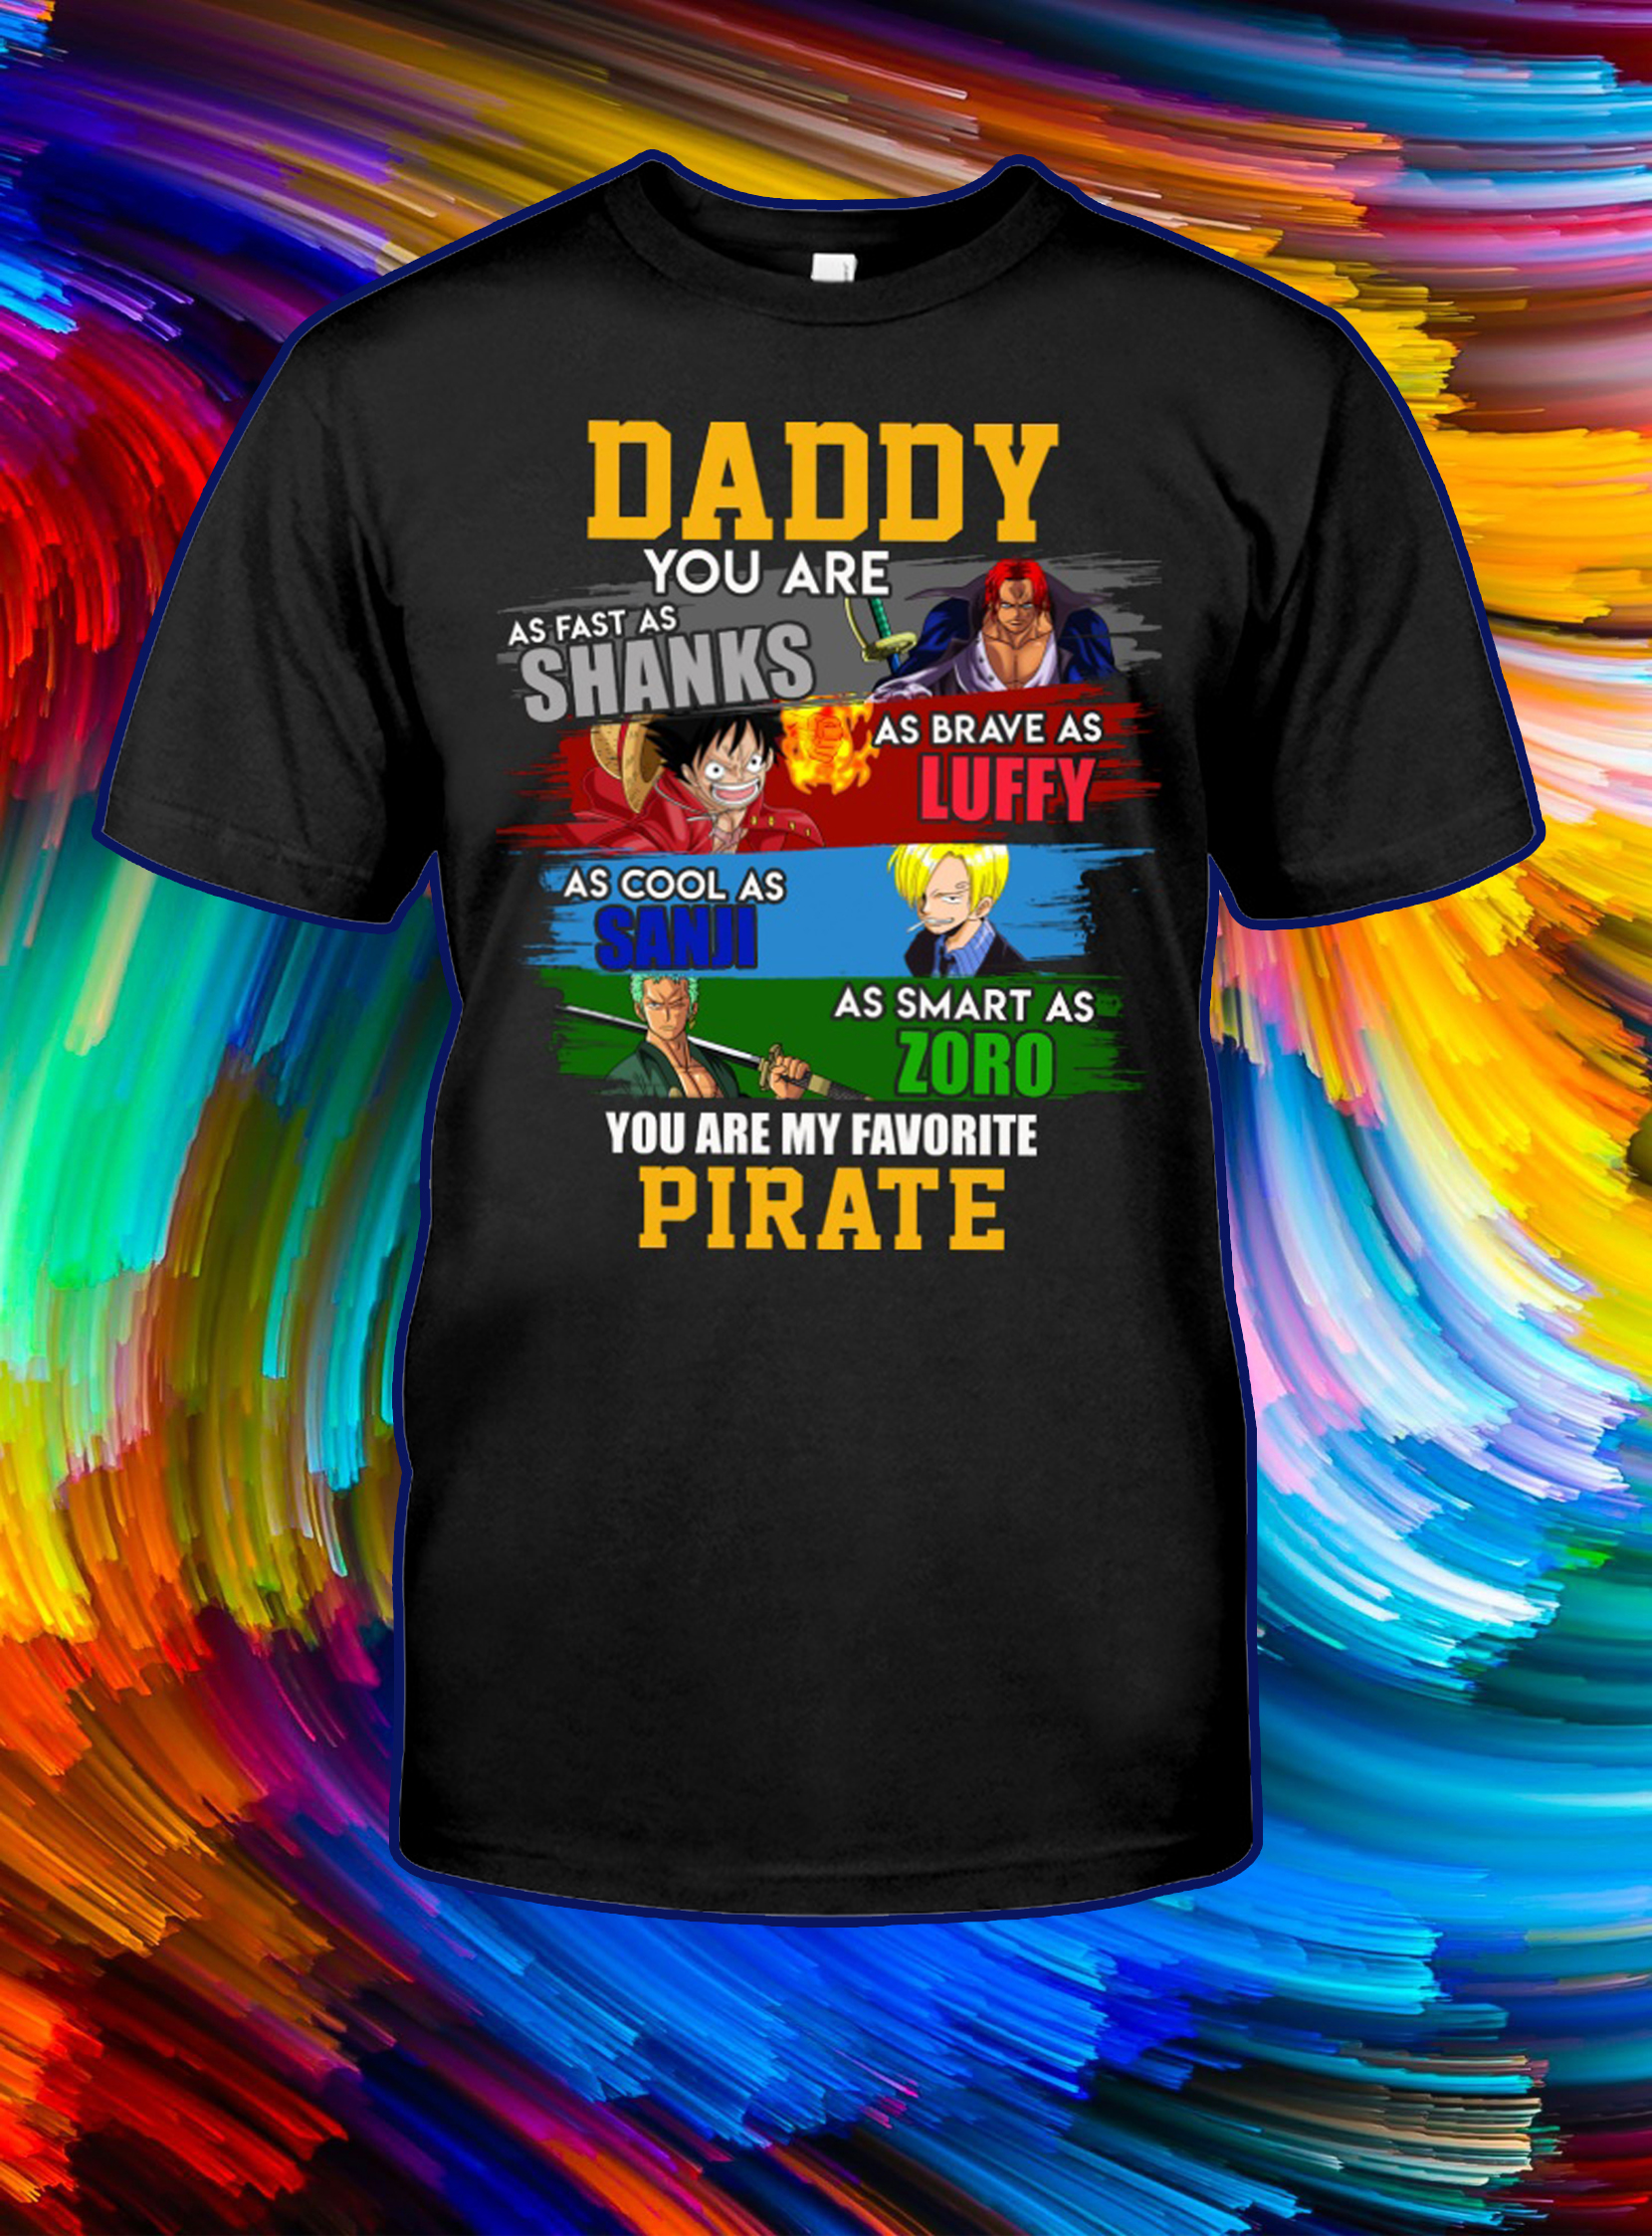 Daddy you are as fast as shanks as brave as lufy shirt